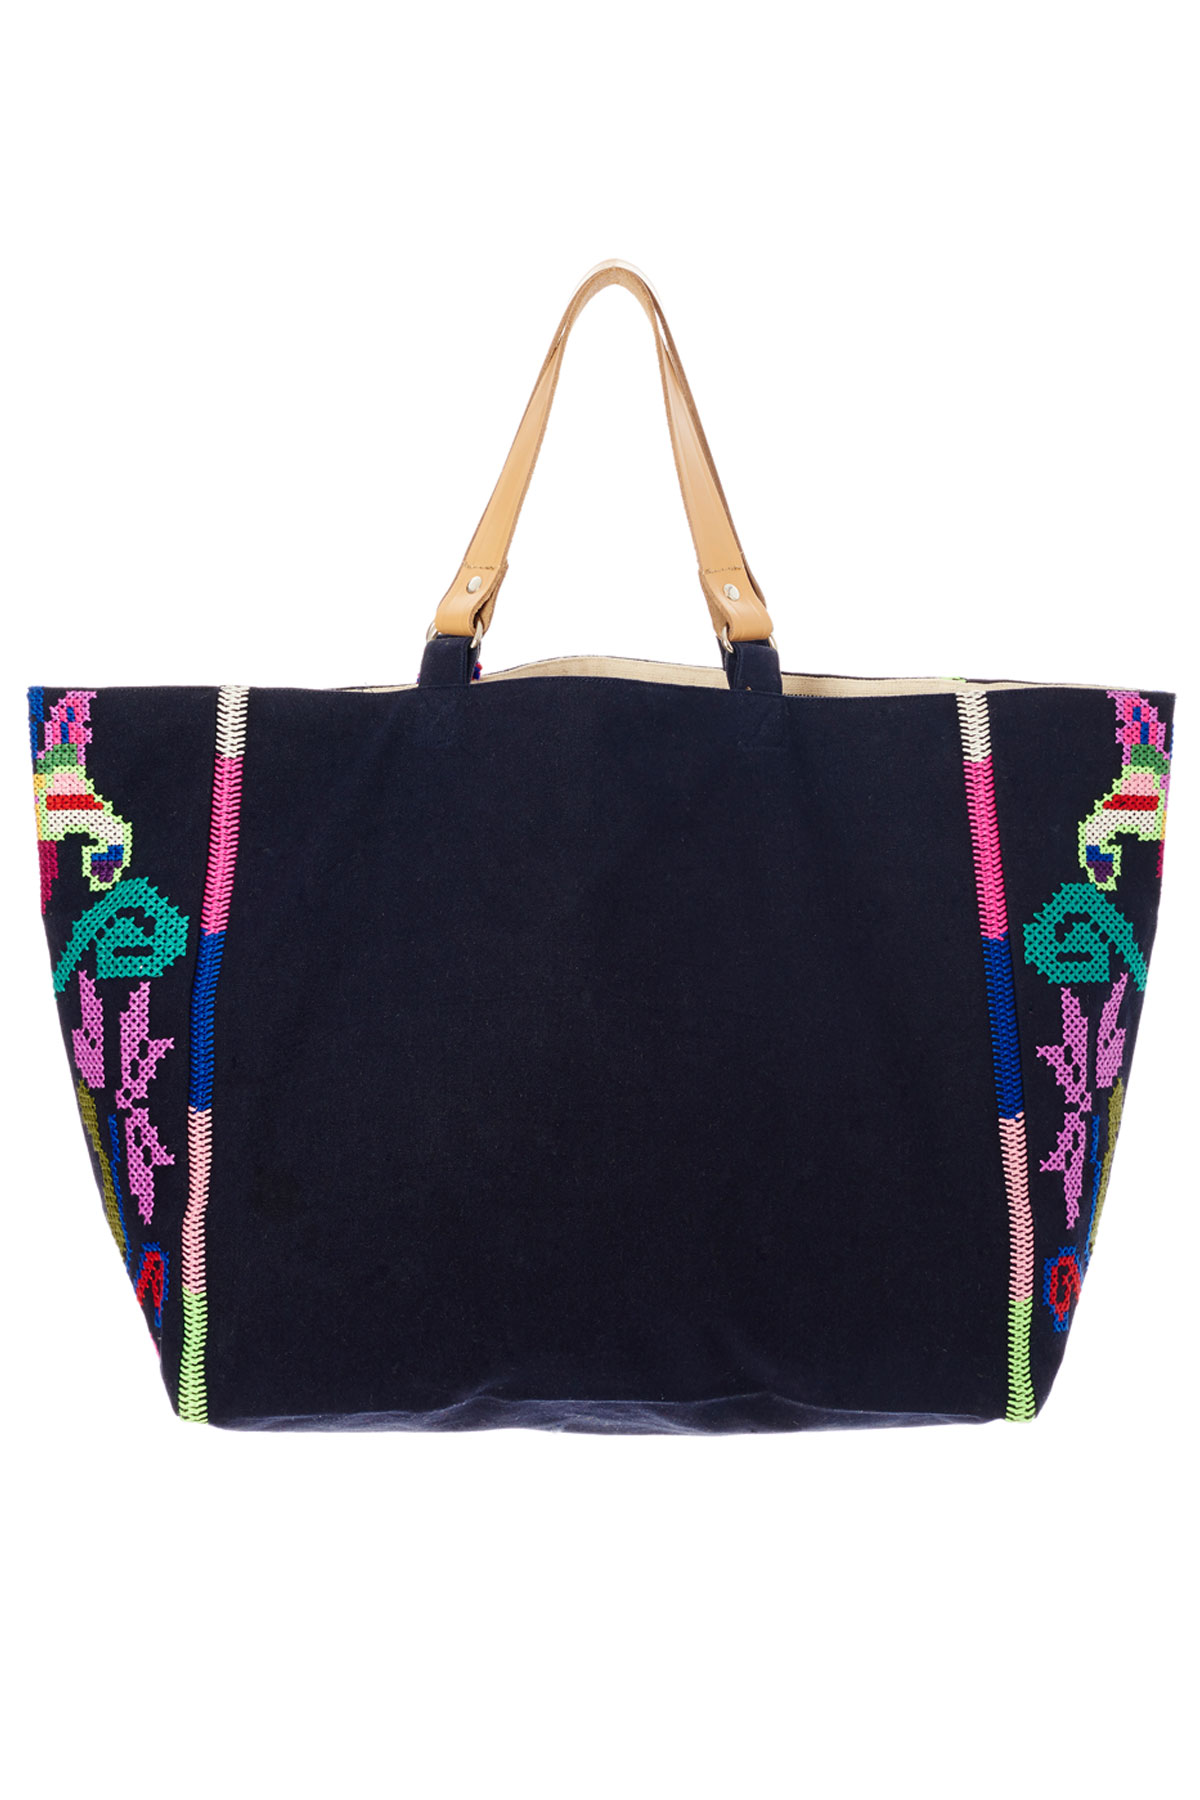 Vita Mexican Inspired Tote - Navy/Multi 2